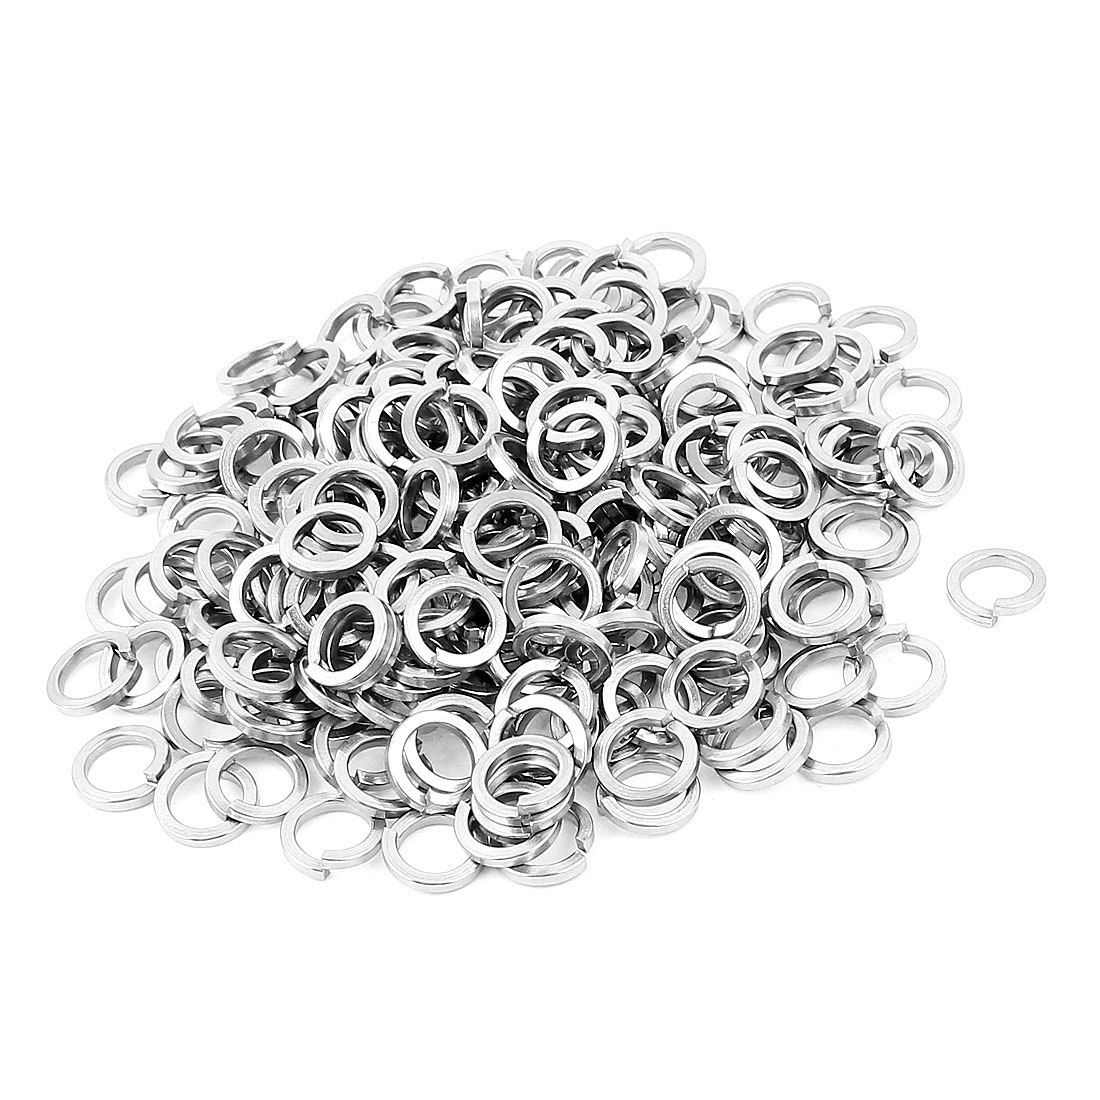 200pcs Stainless Steel M8 Split Lock Spring Washers Screw Pads